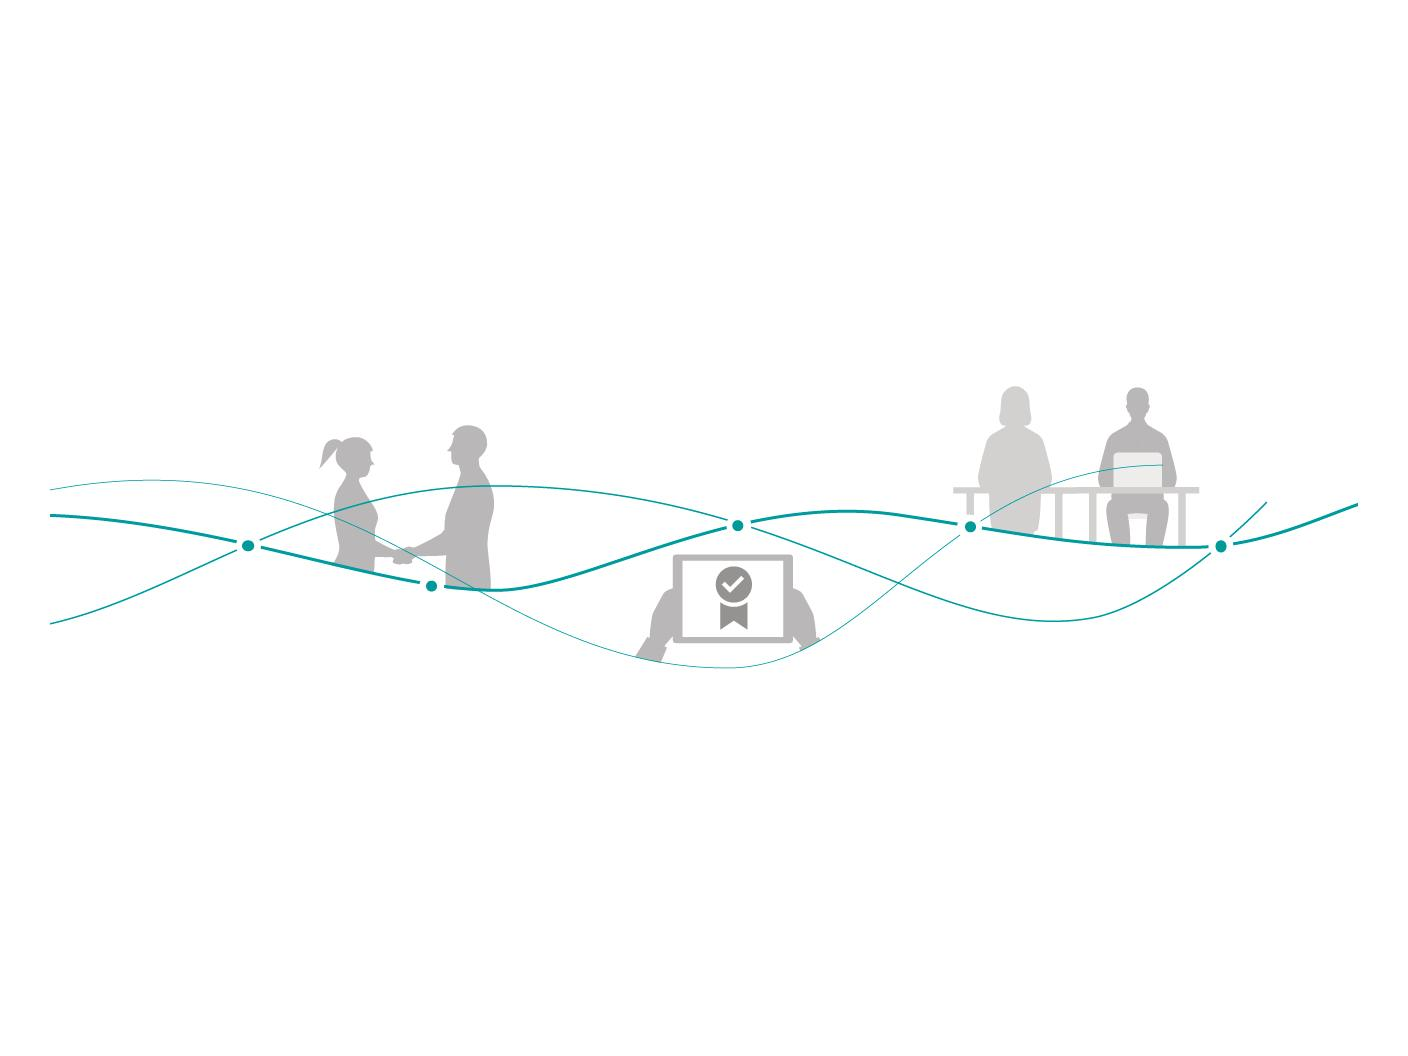 Siemens Healthineers - Value Partnerships: A game-changer for healthcare providers worldwide